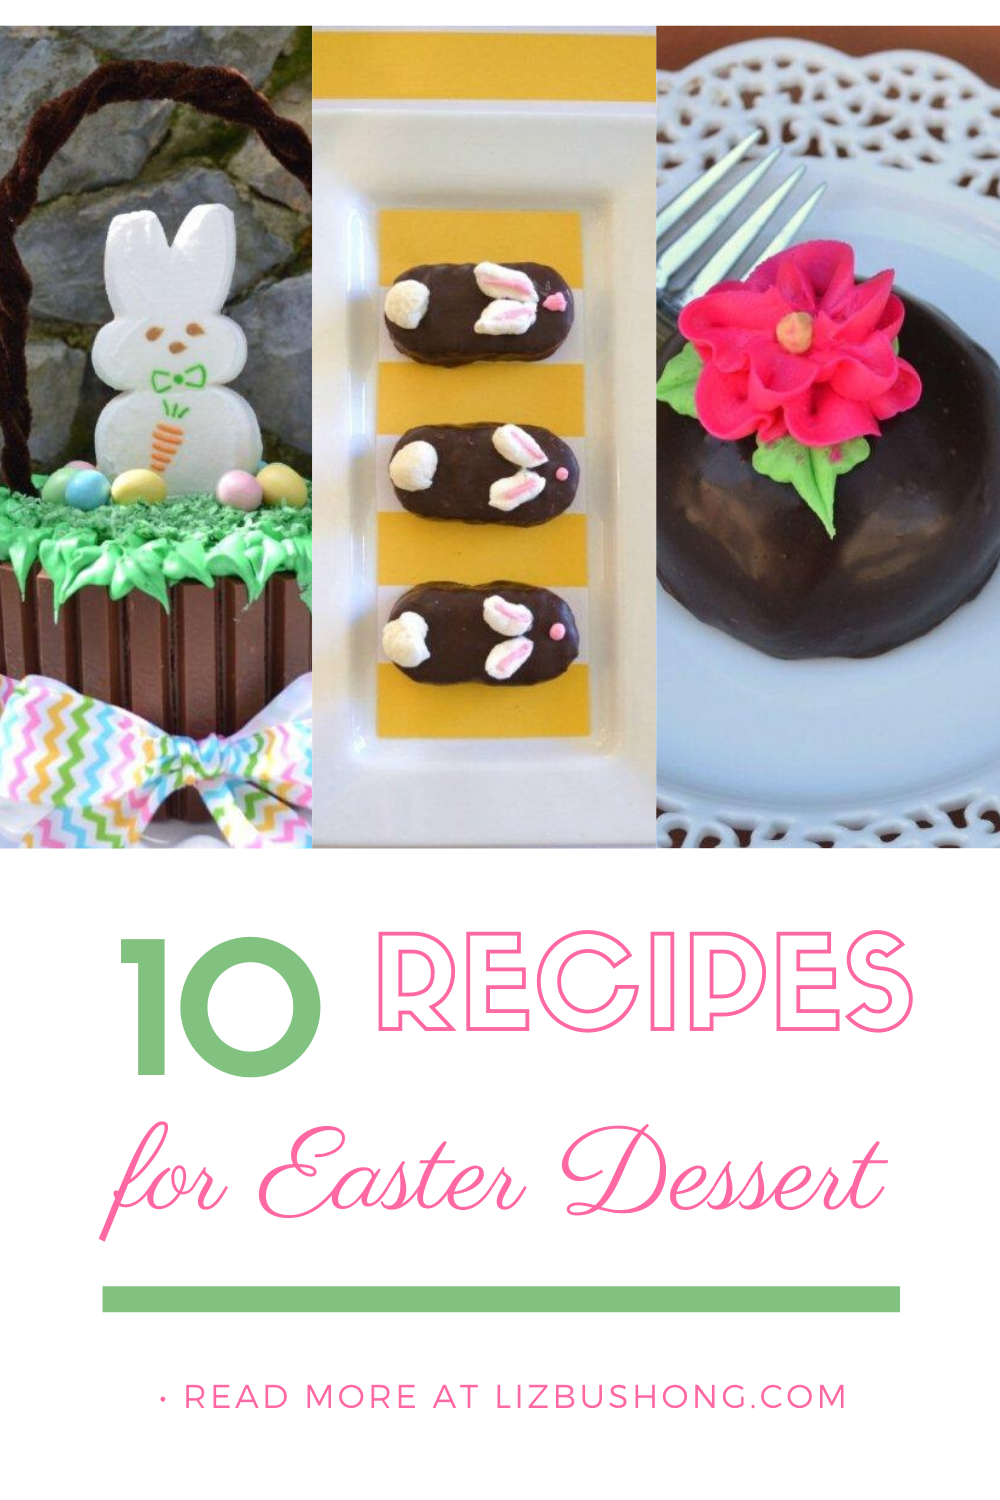 10 Recipes for Easter Dessert lizbushong.com